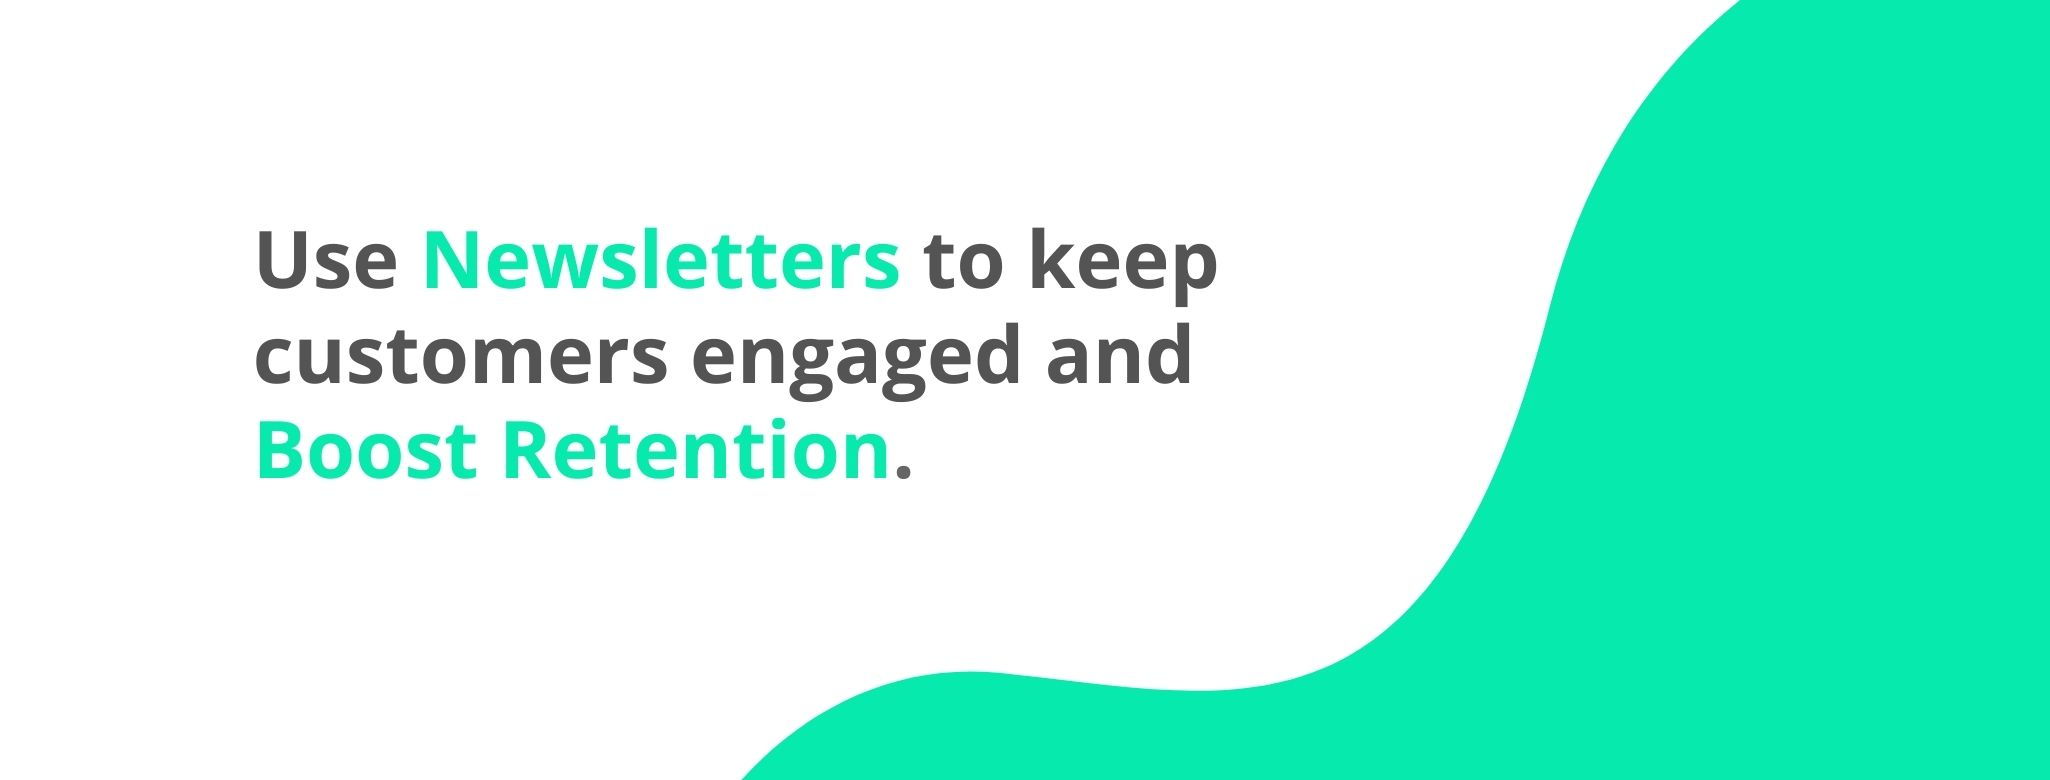 Use newsletter to keep customers engaged and boost retention - 32 Customer Retention Strategies - Replyco